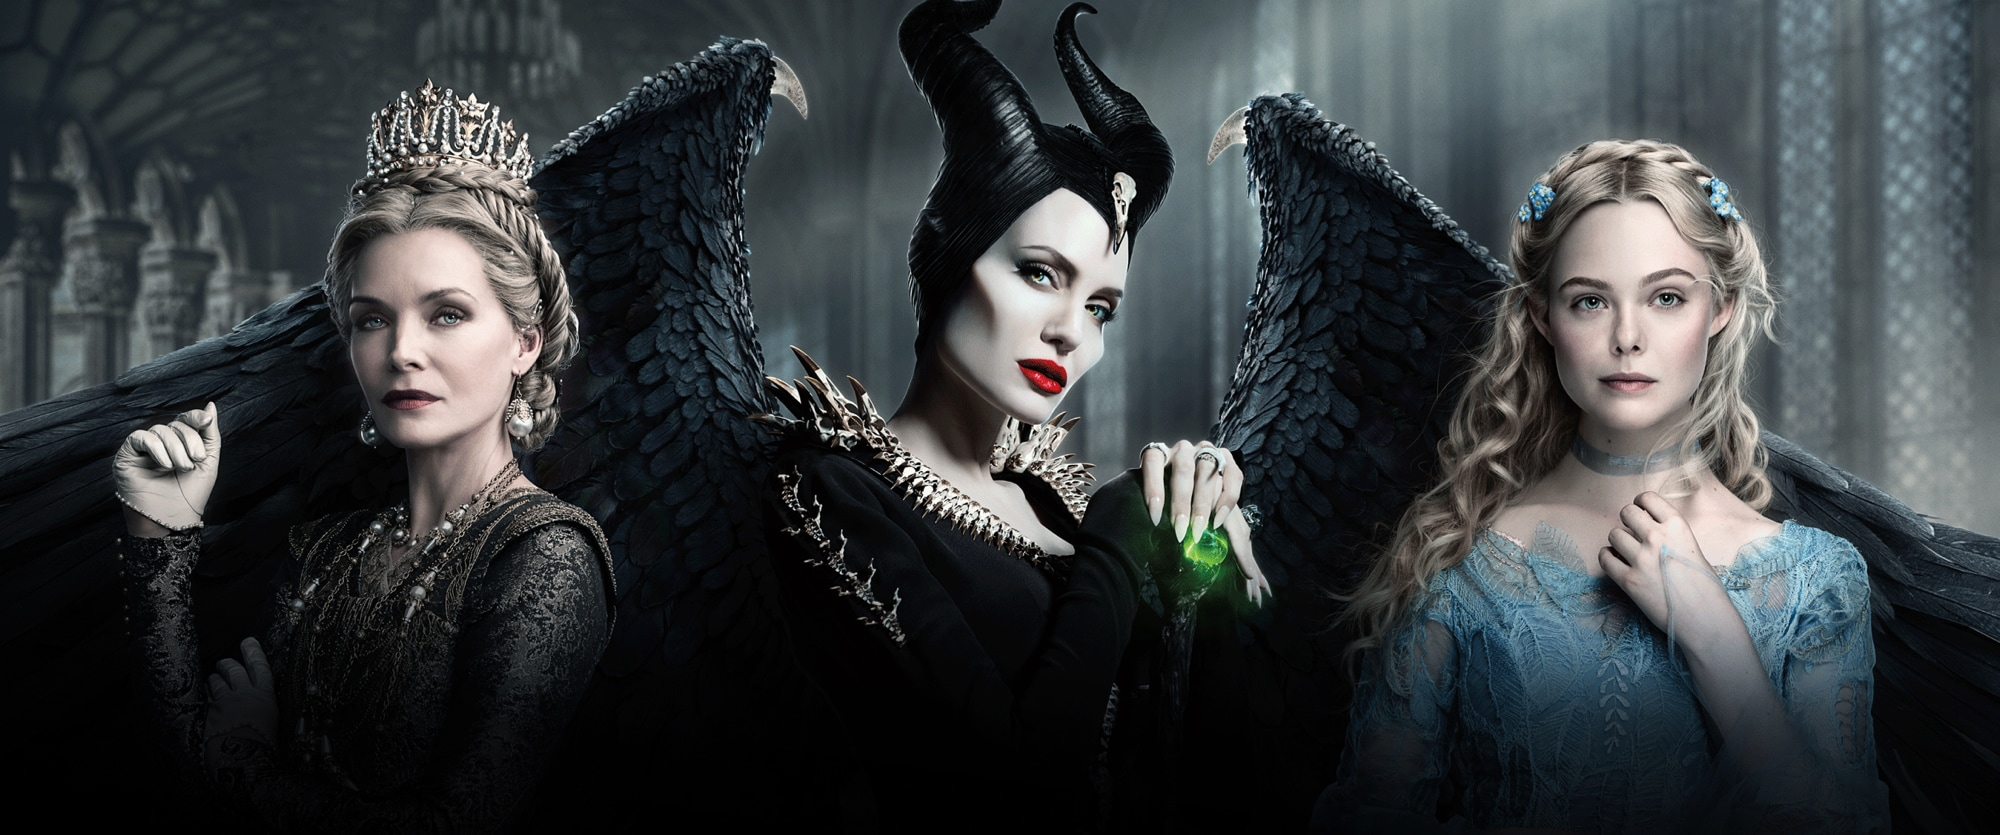 Maleficent: Mistress of Evil - Showcase hero